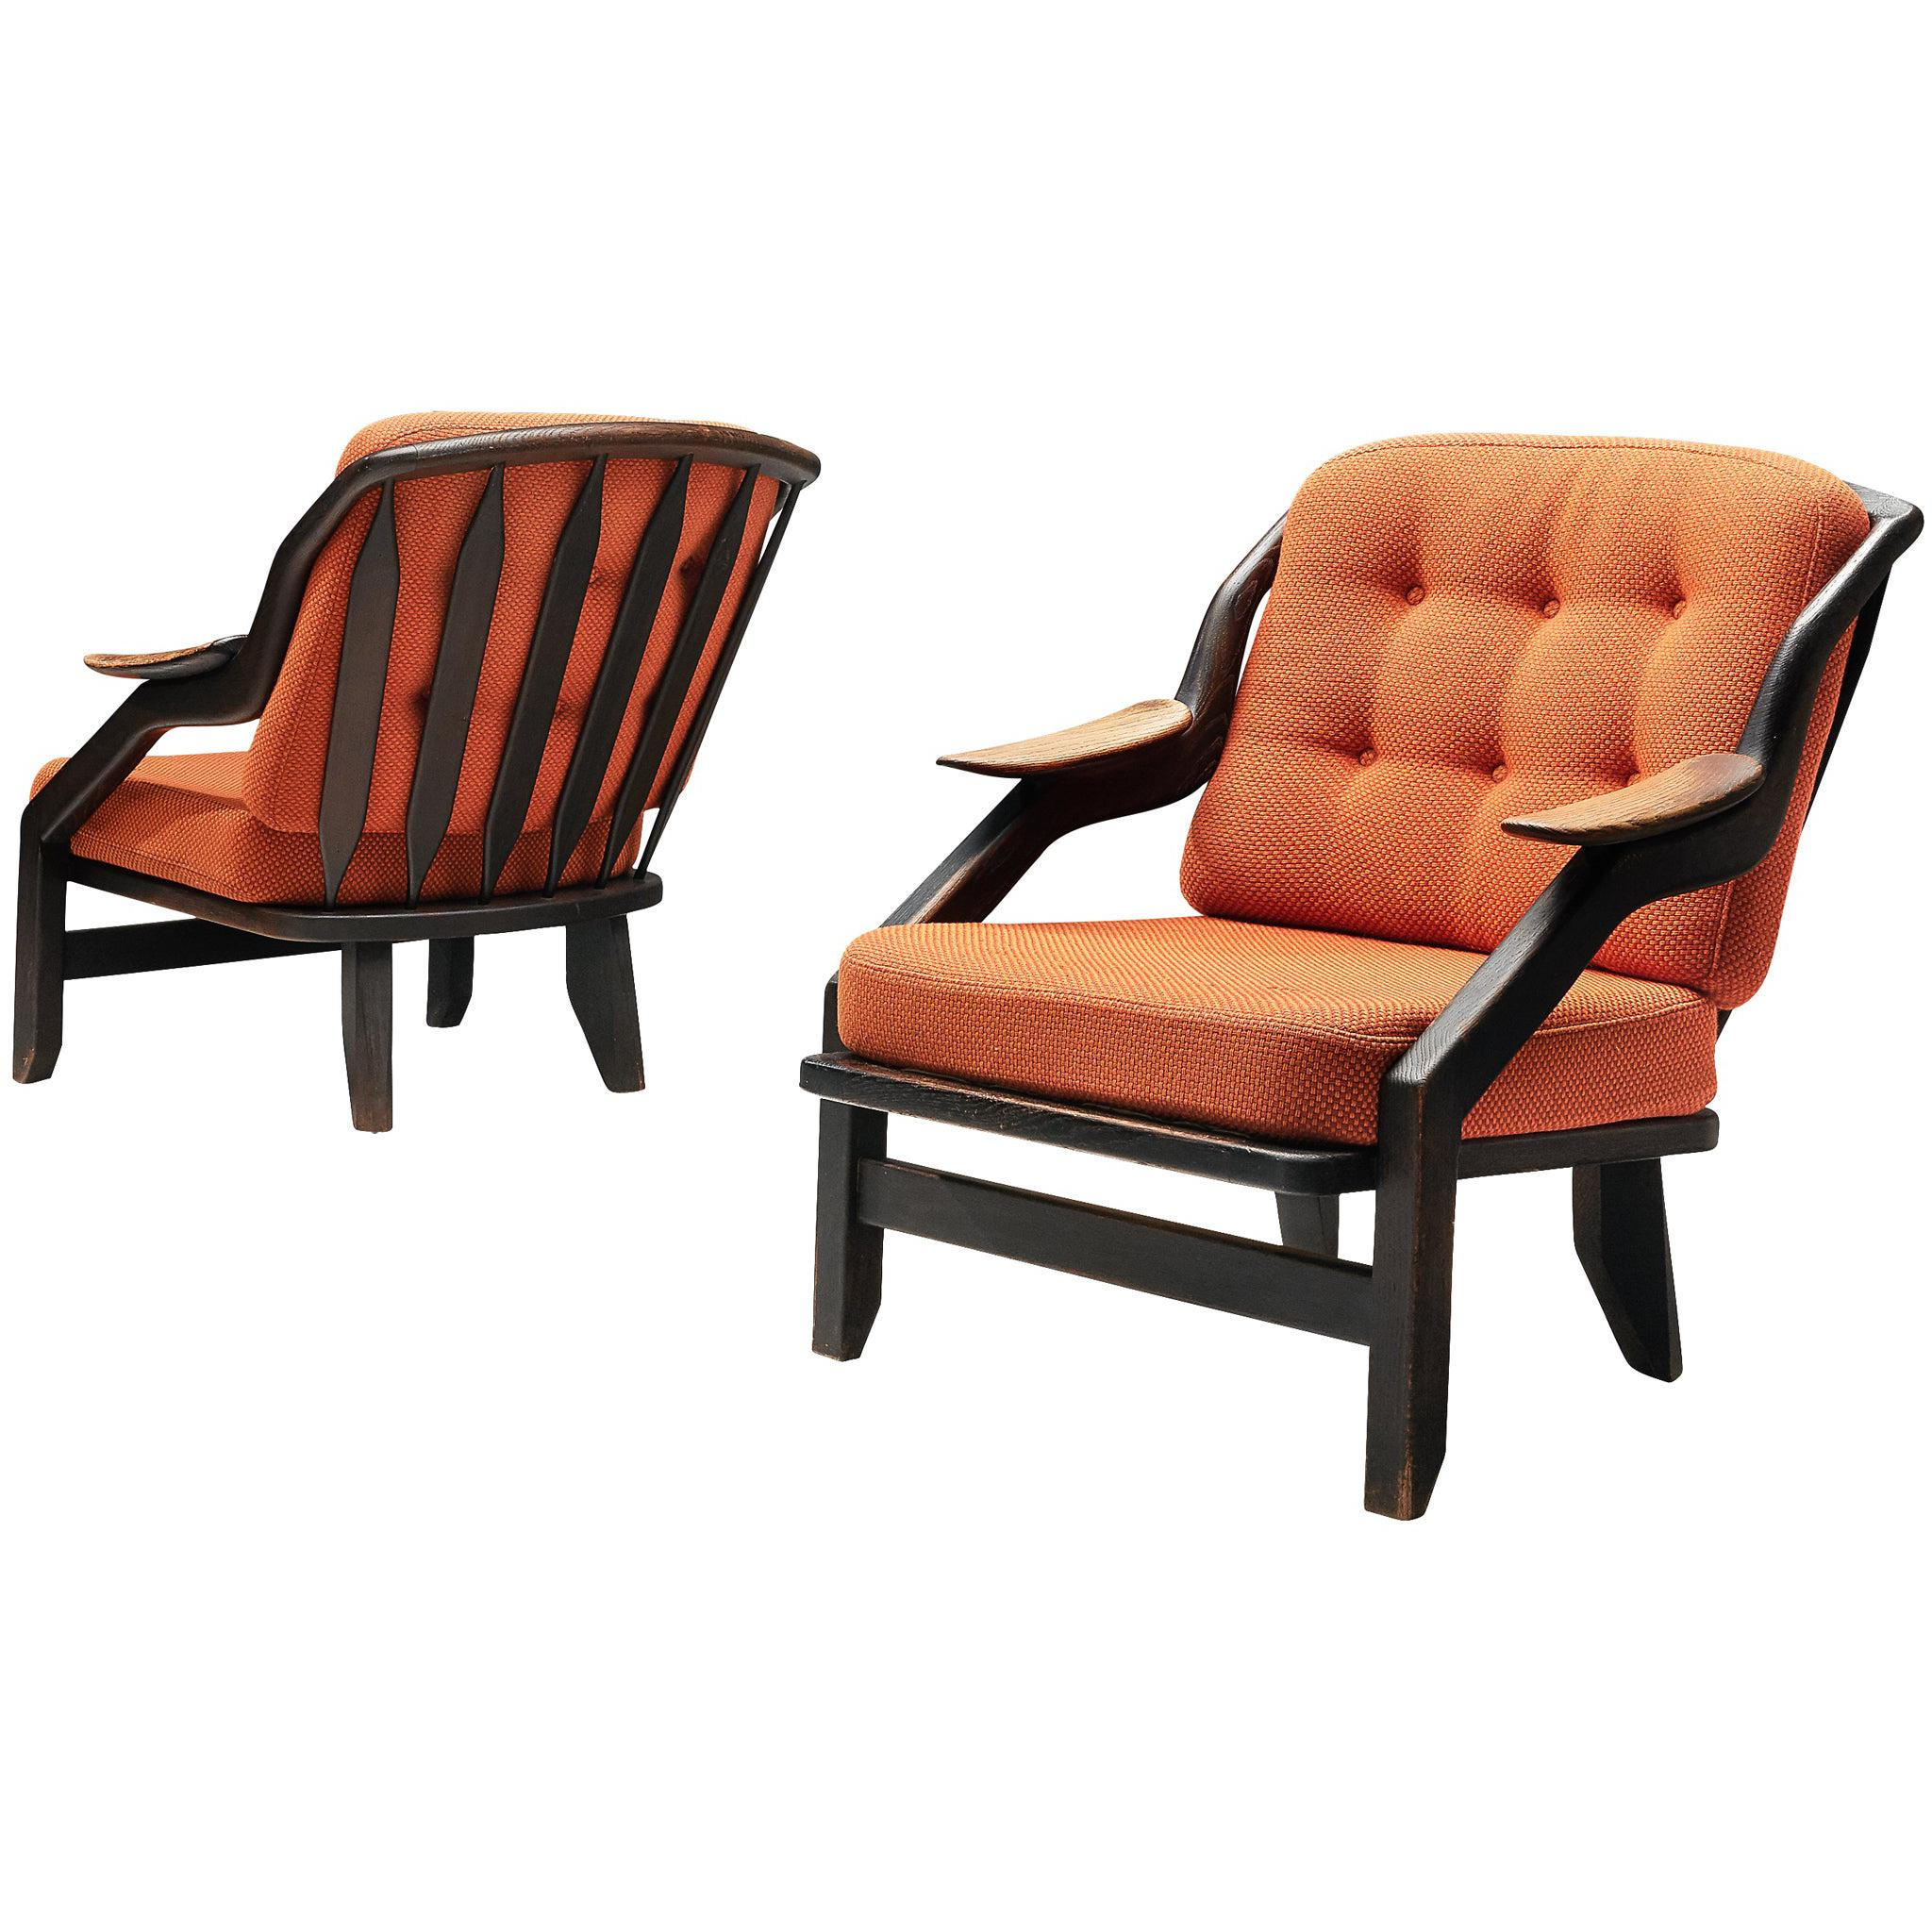 Pair of Lounge Chairs with Orange Upholstery by Guillerme & Chambron